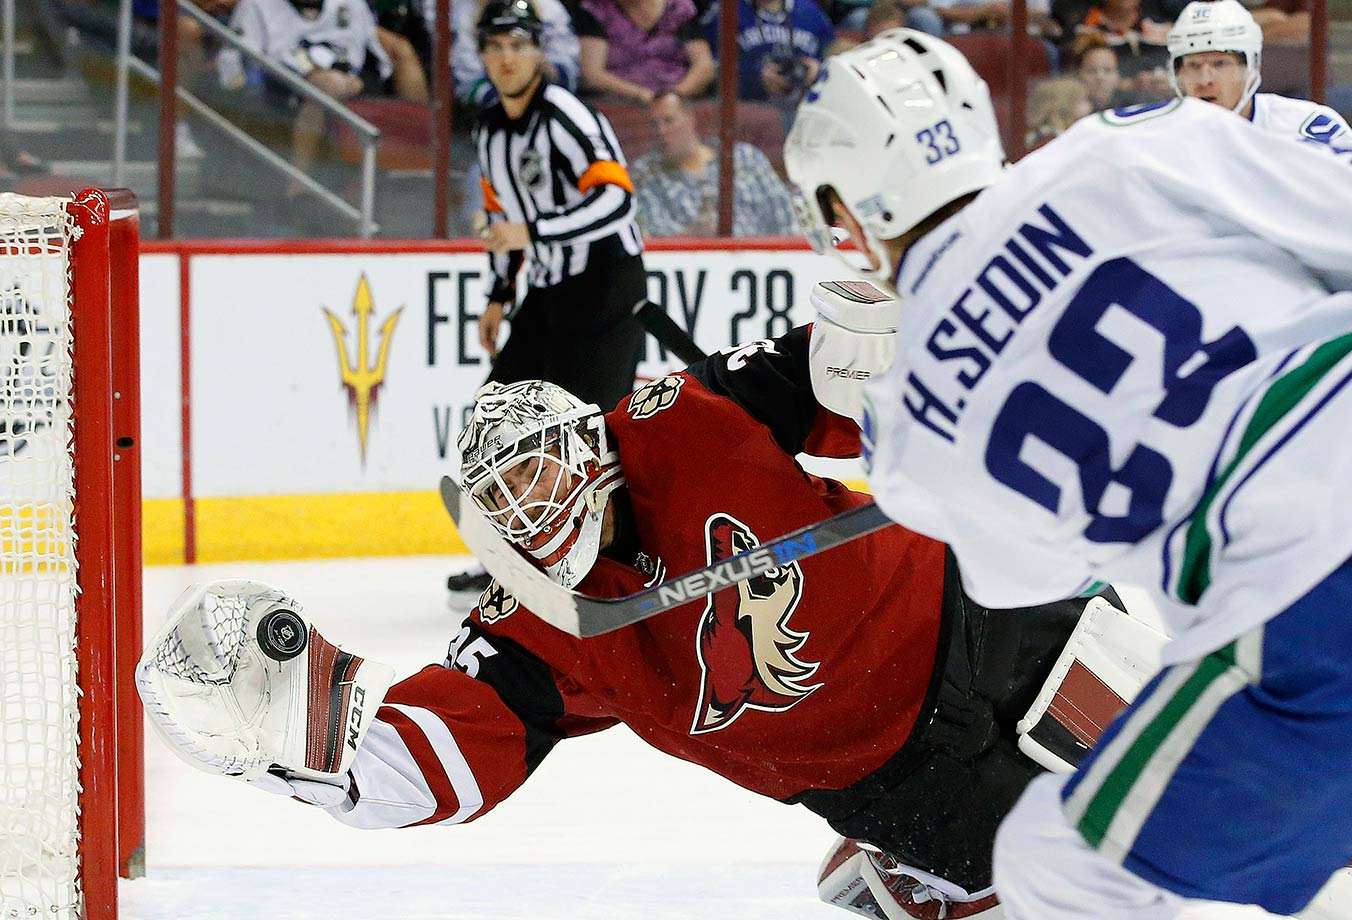 Louis Domingue makes a diving save on a shot by Henrik Sedin during the first period of the Arizona Coyotes game against the Vancouver Canucks in Glendale, Ariz.